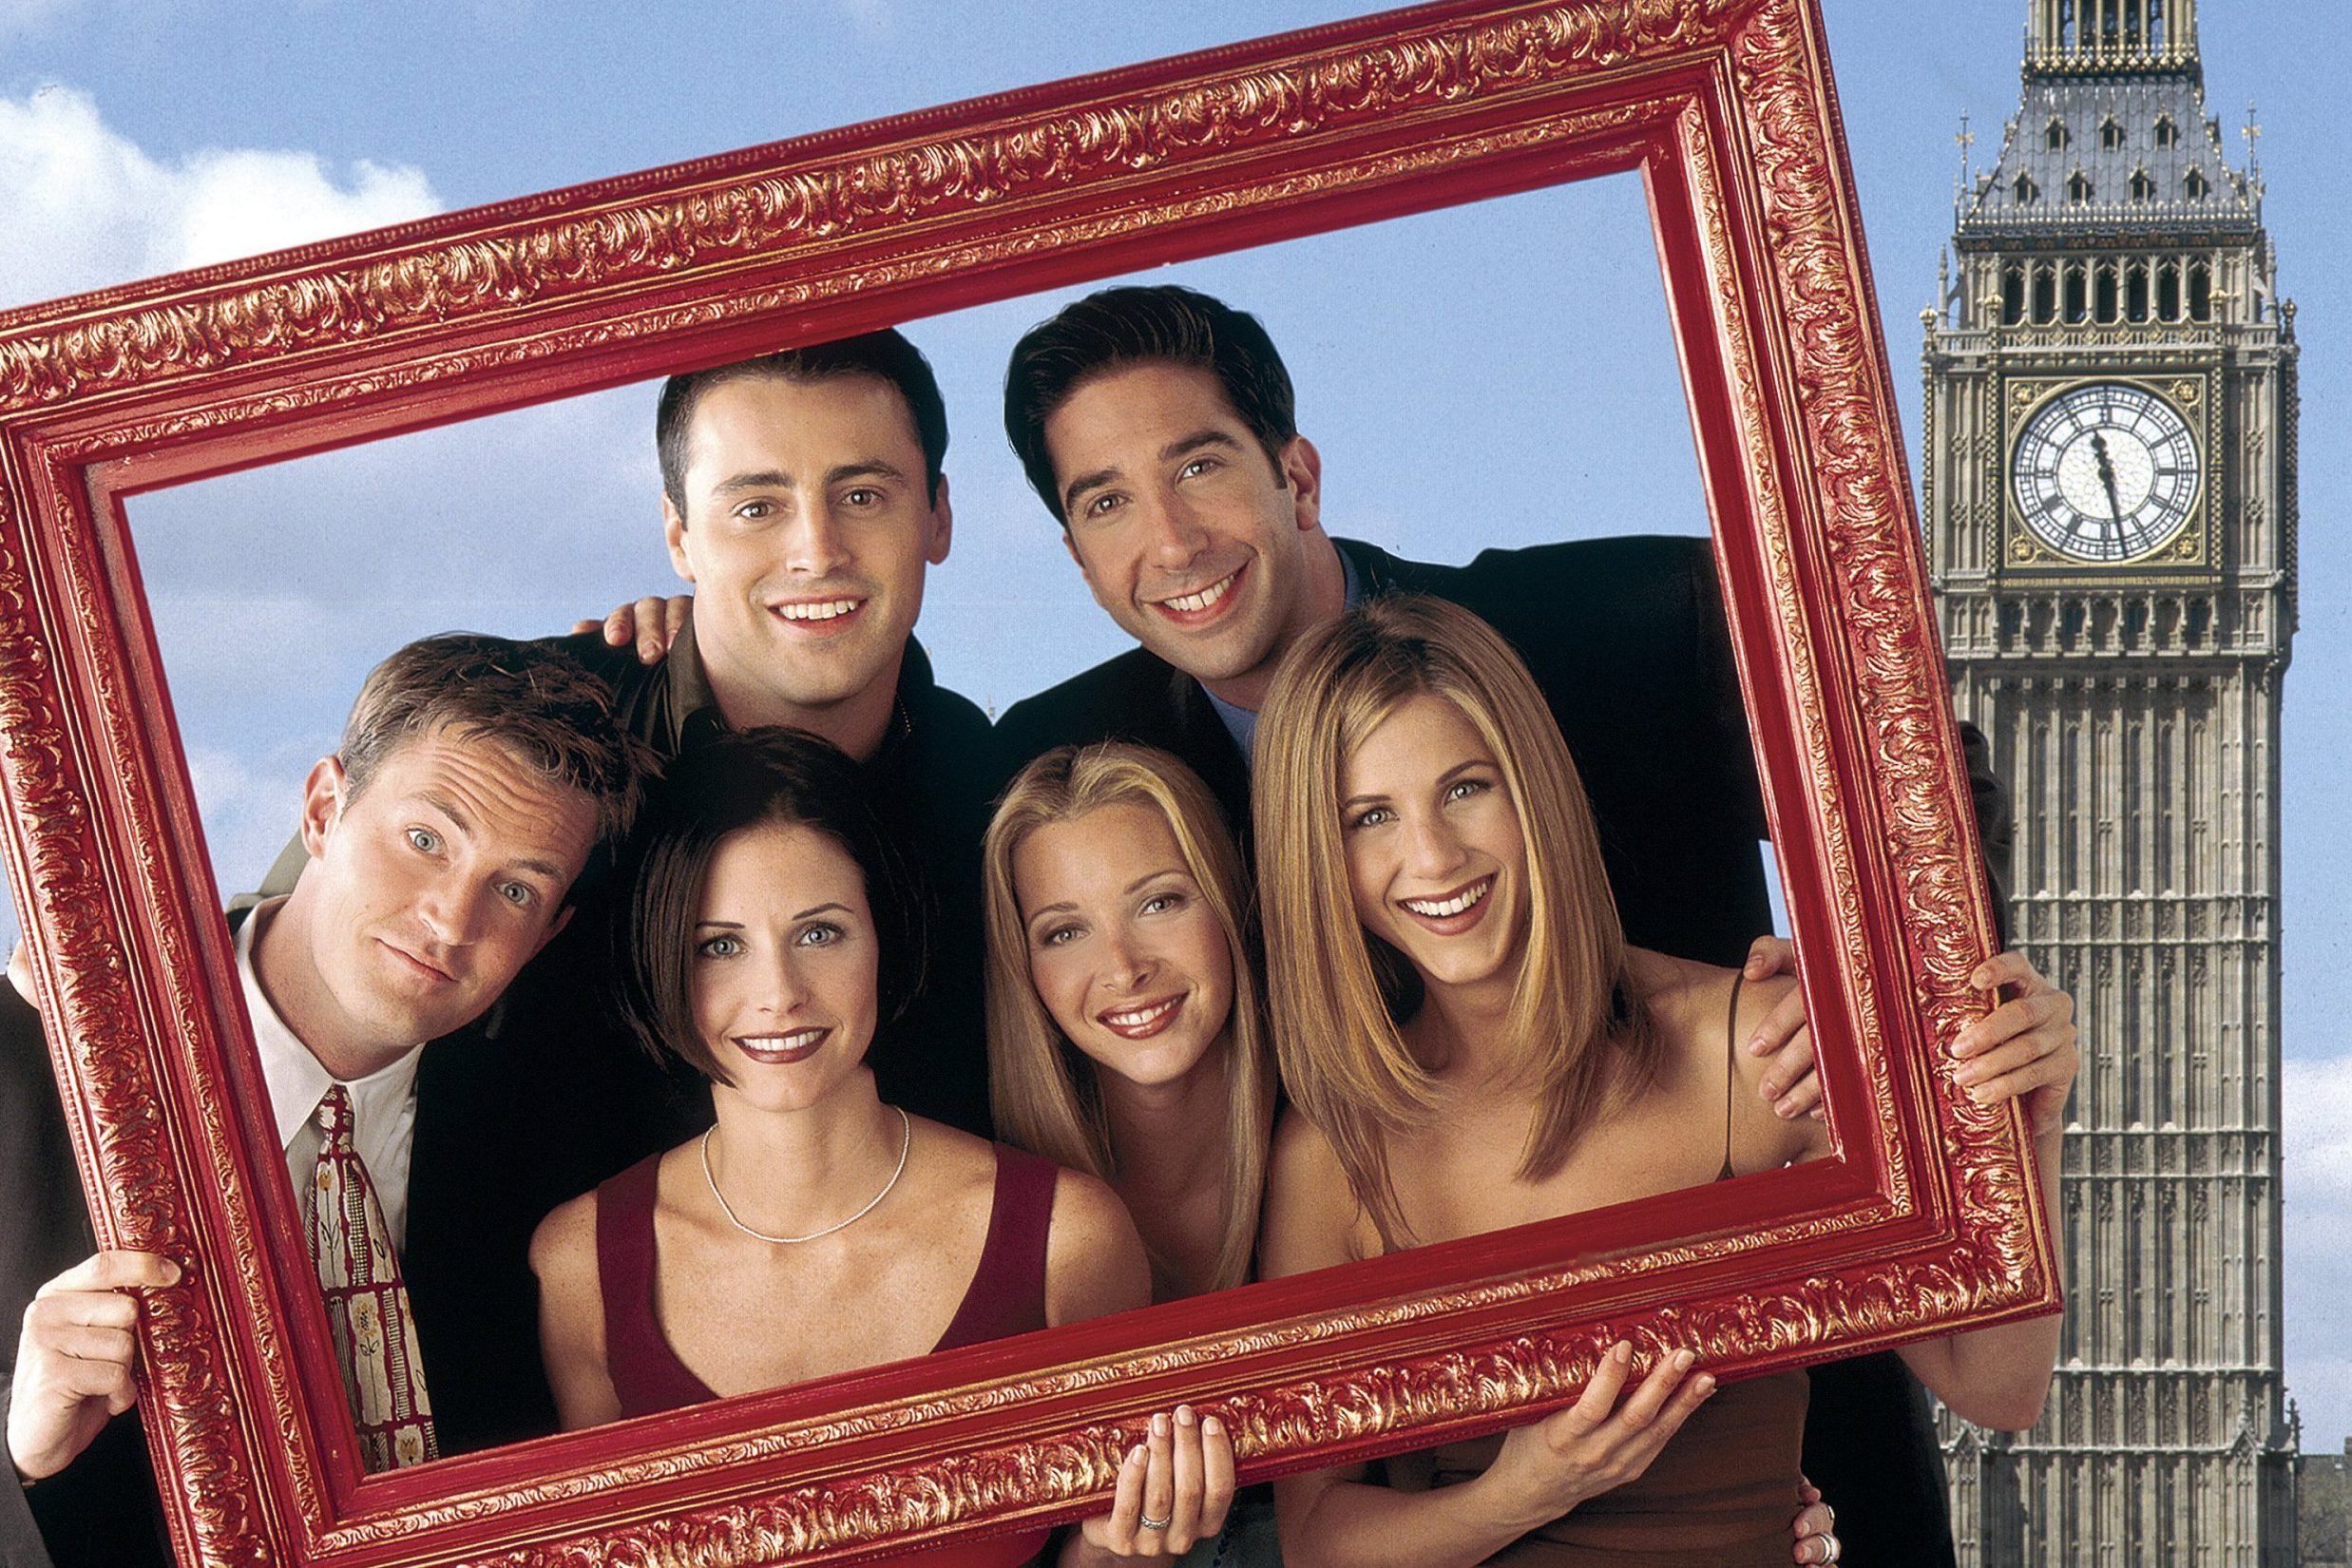 How to get tickets to Friends The Musical in the UK